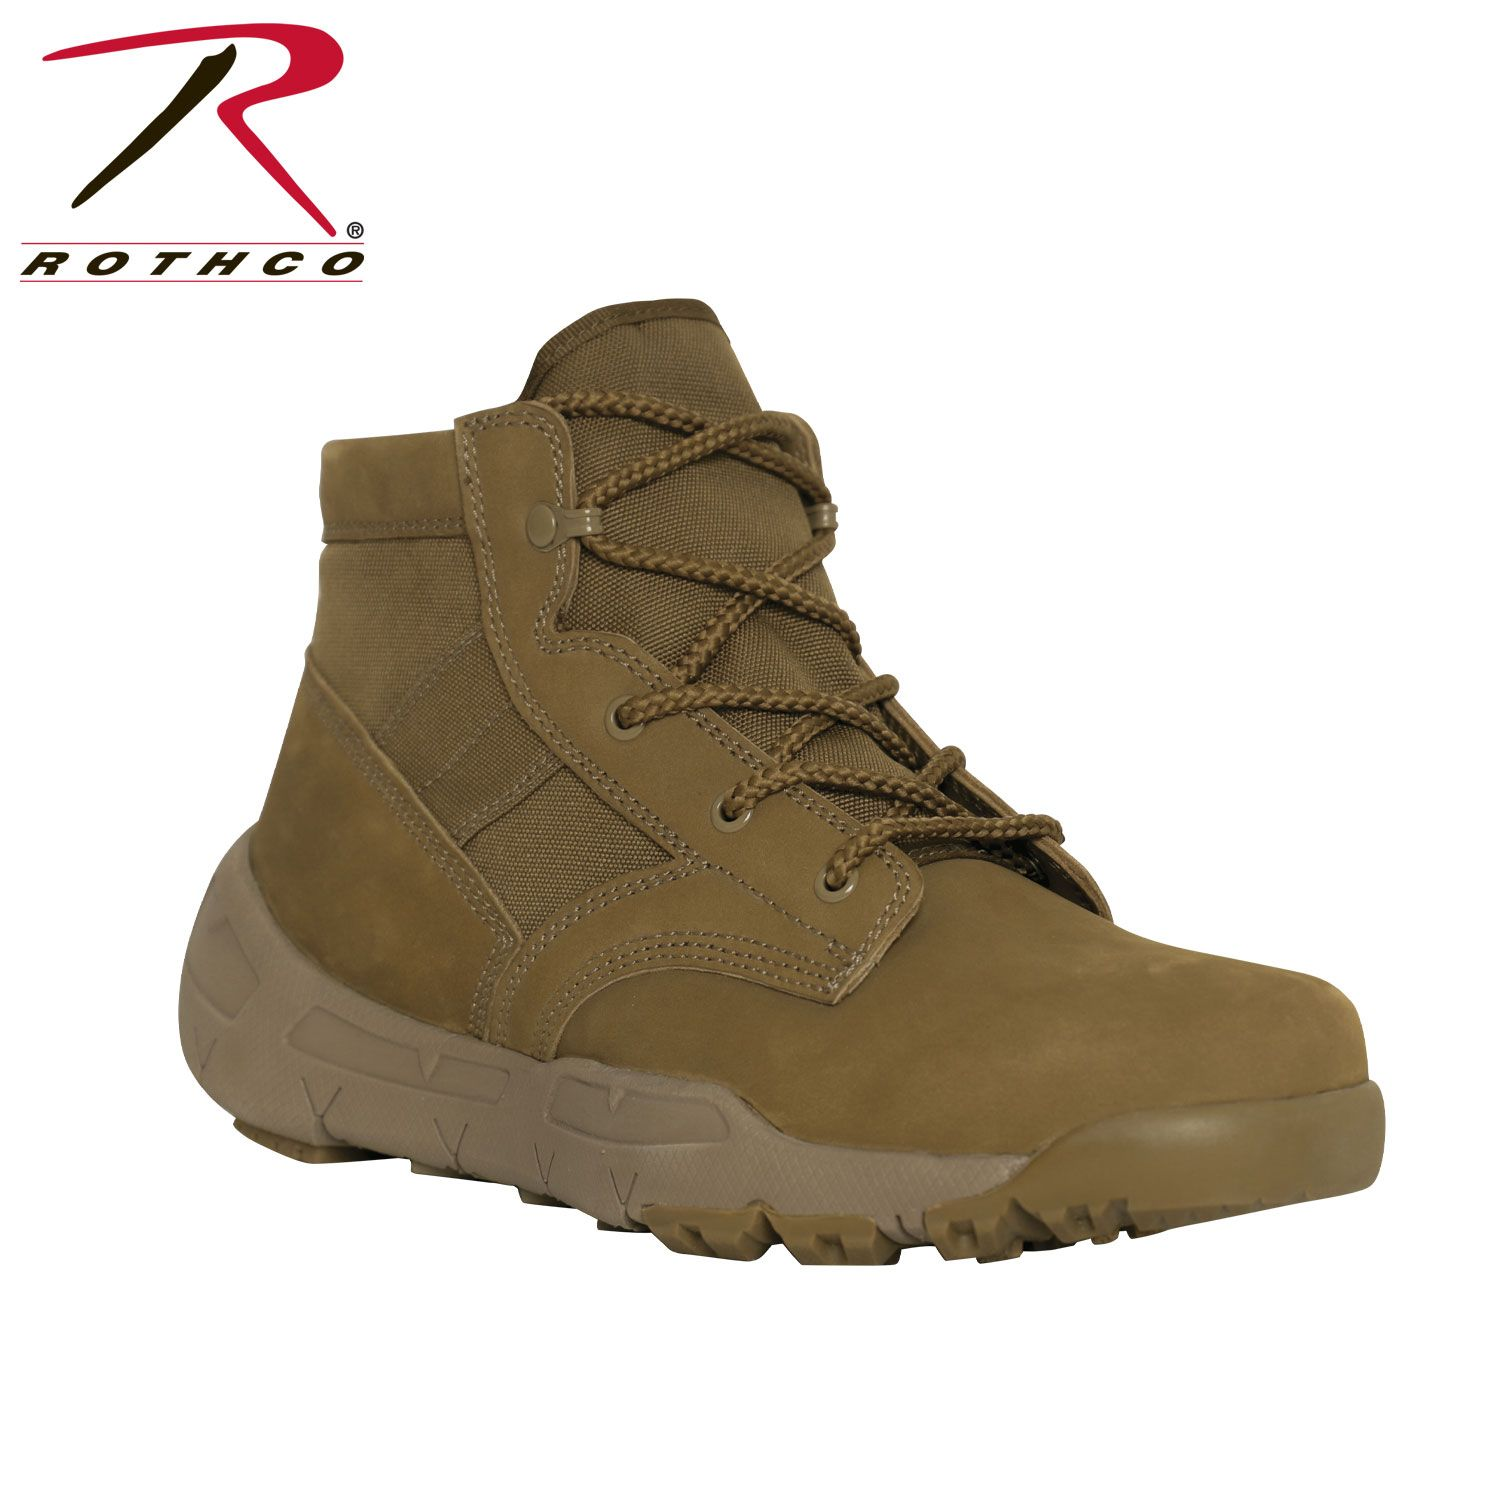 Rothco 6 V Max Lightweight Tactical Boot Tactical Boots Boots Military Style Boots